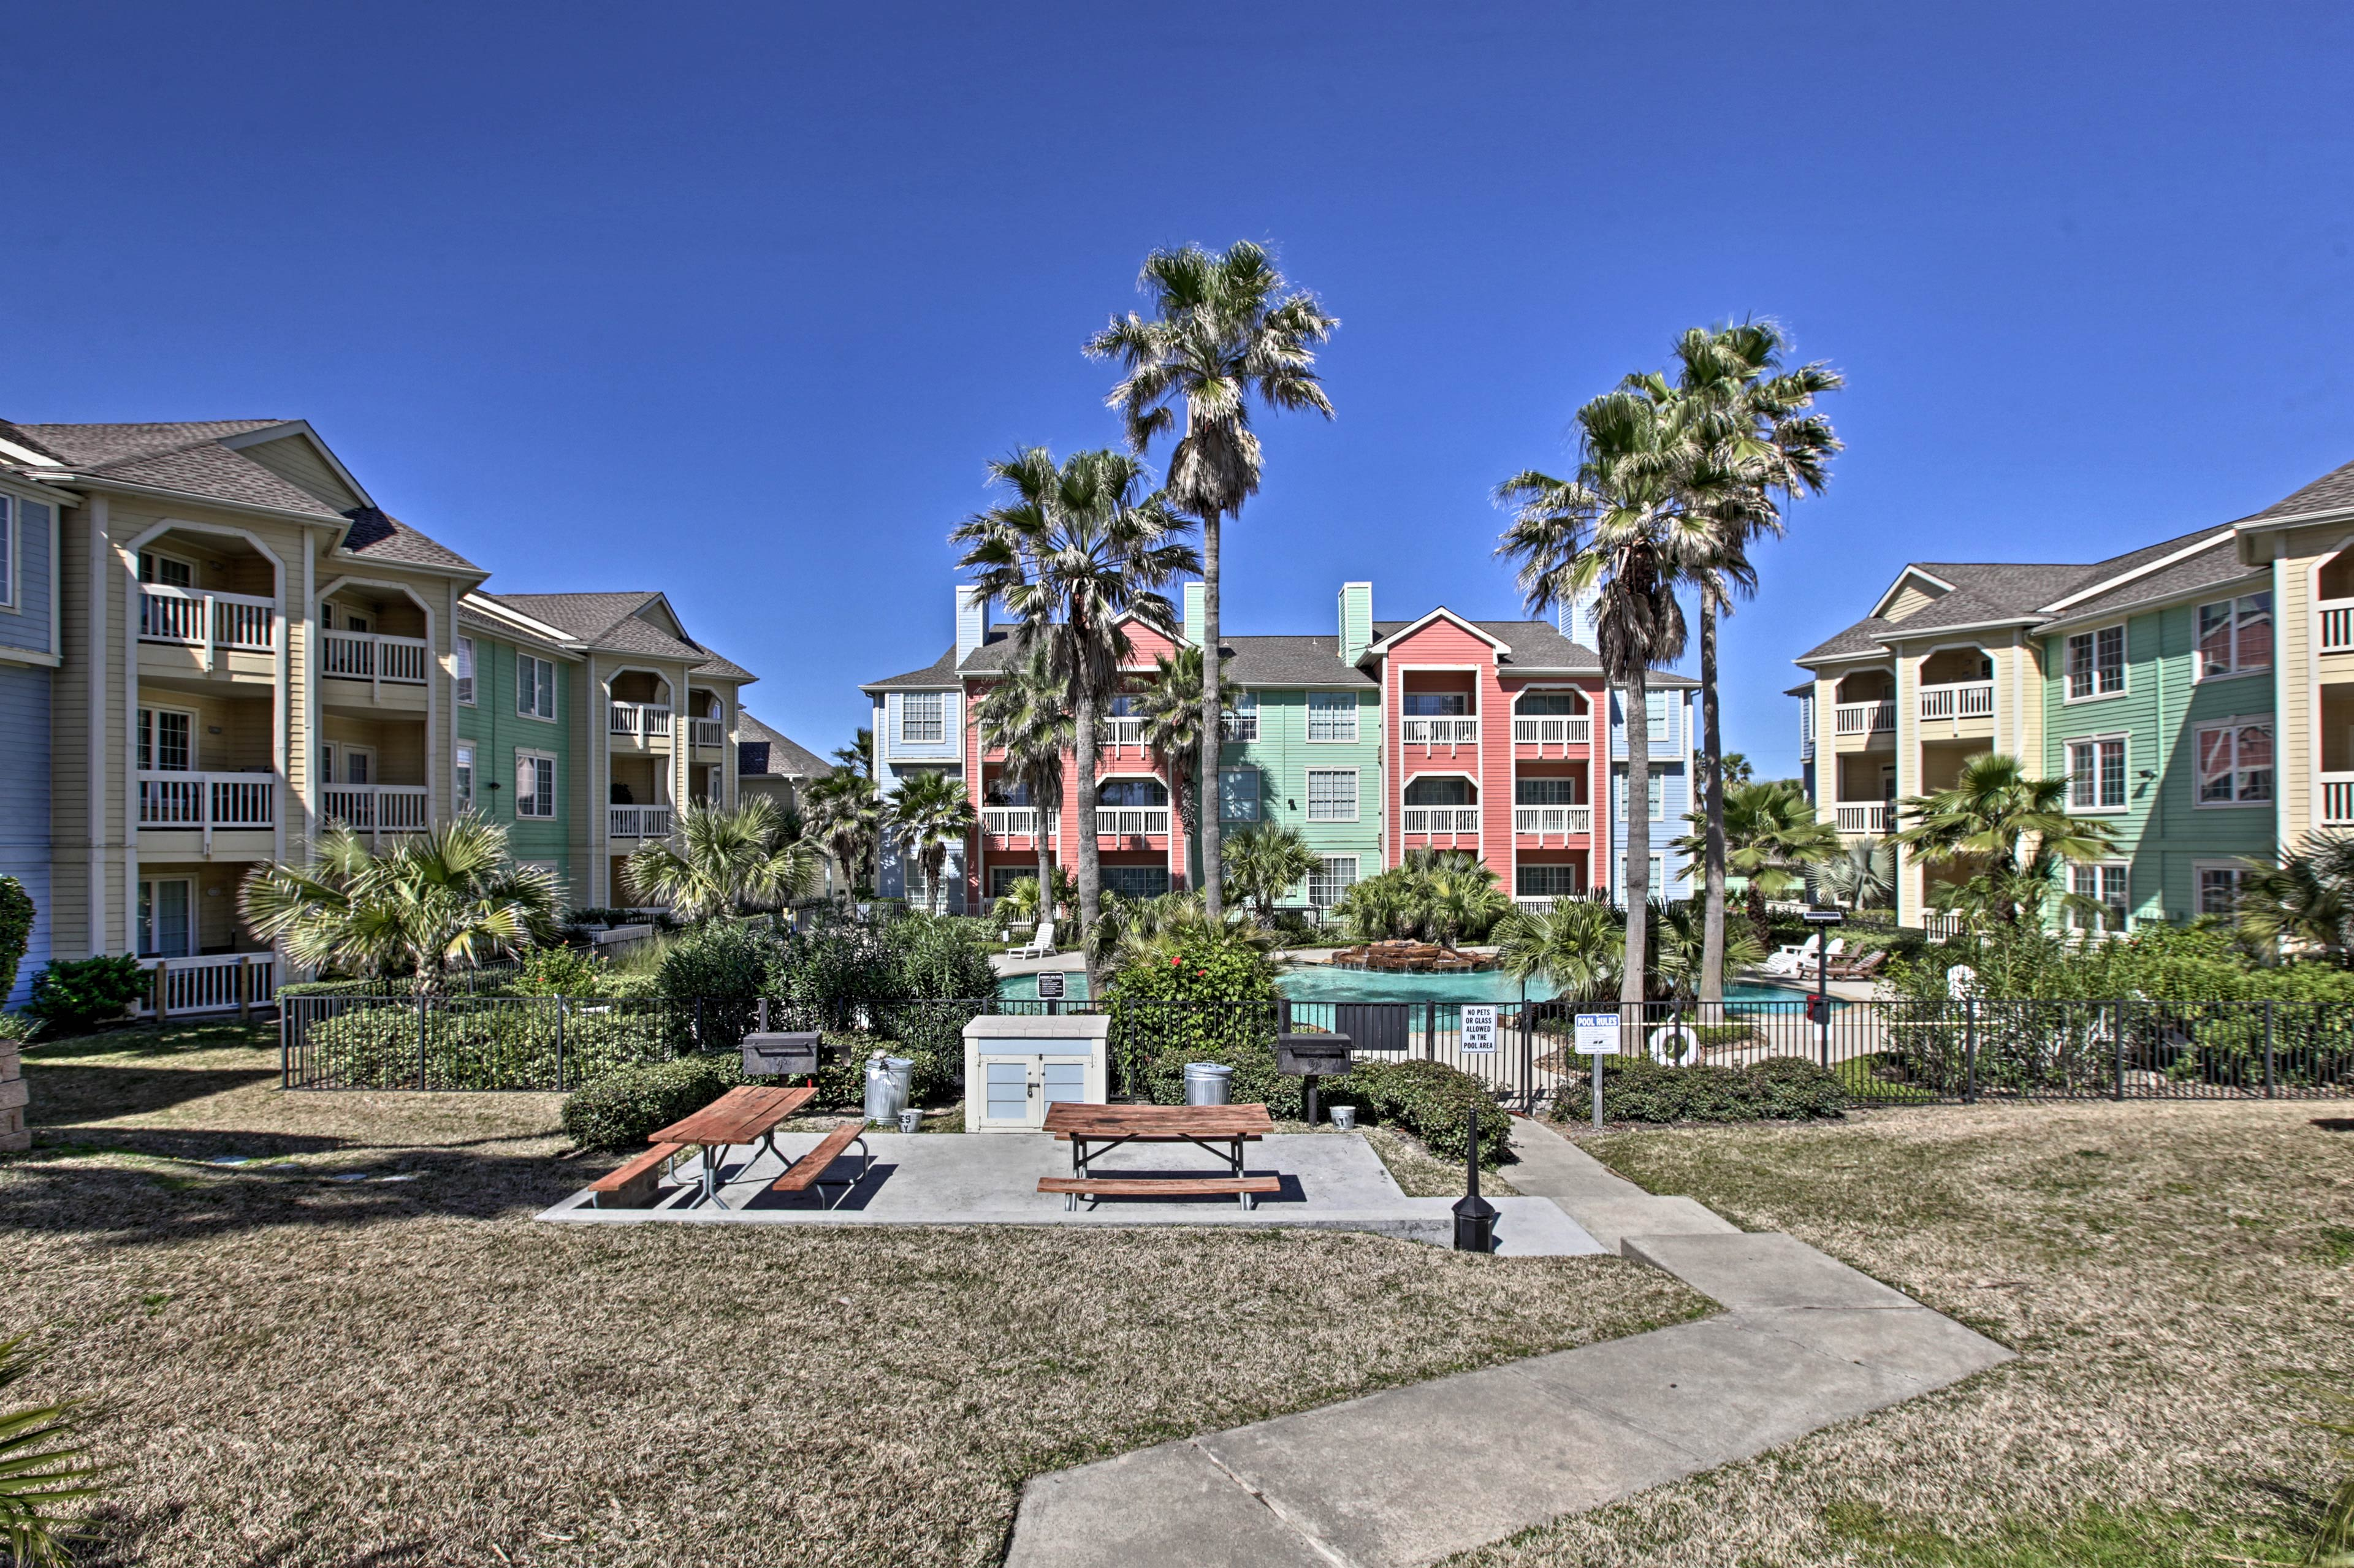 This stunning complex is located just across the street from the beach!